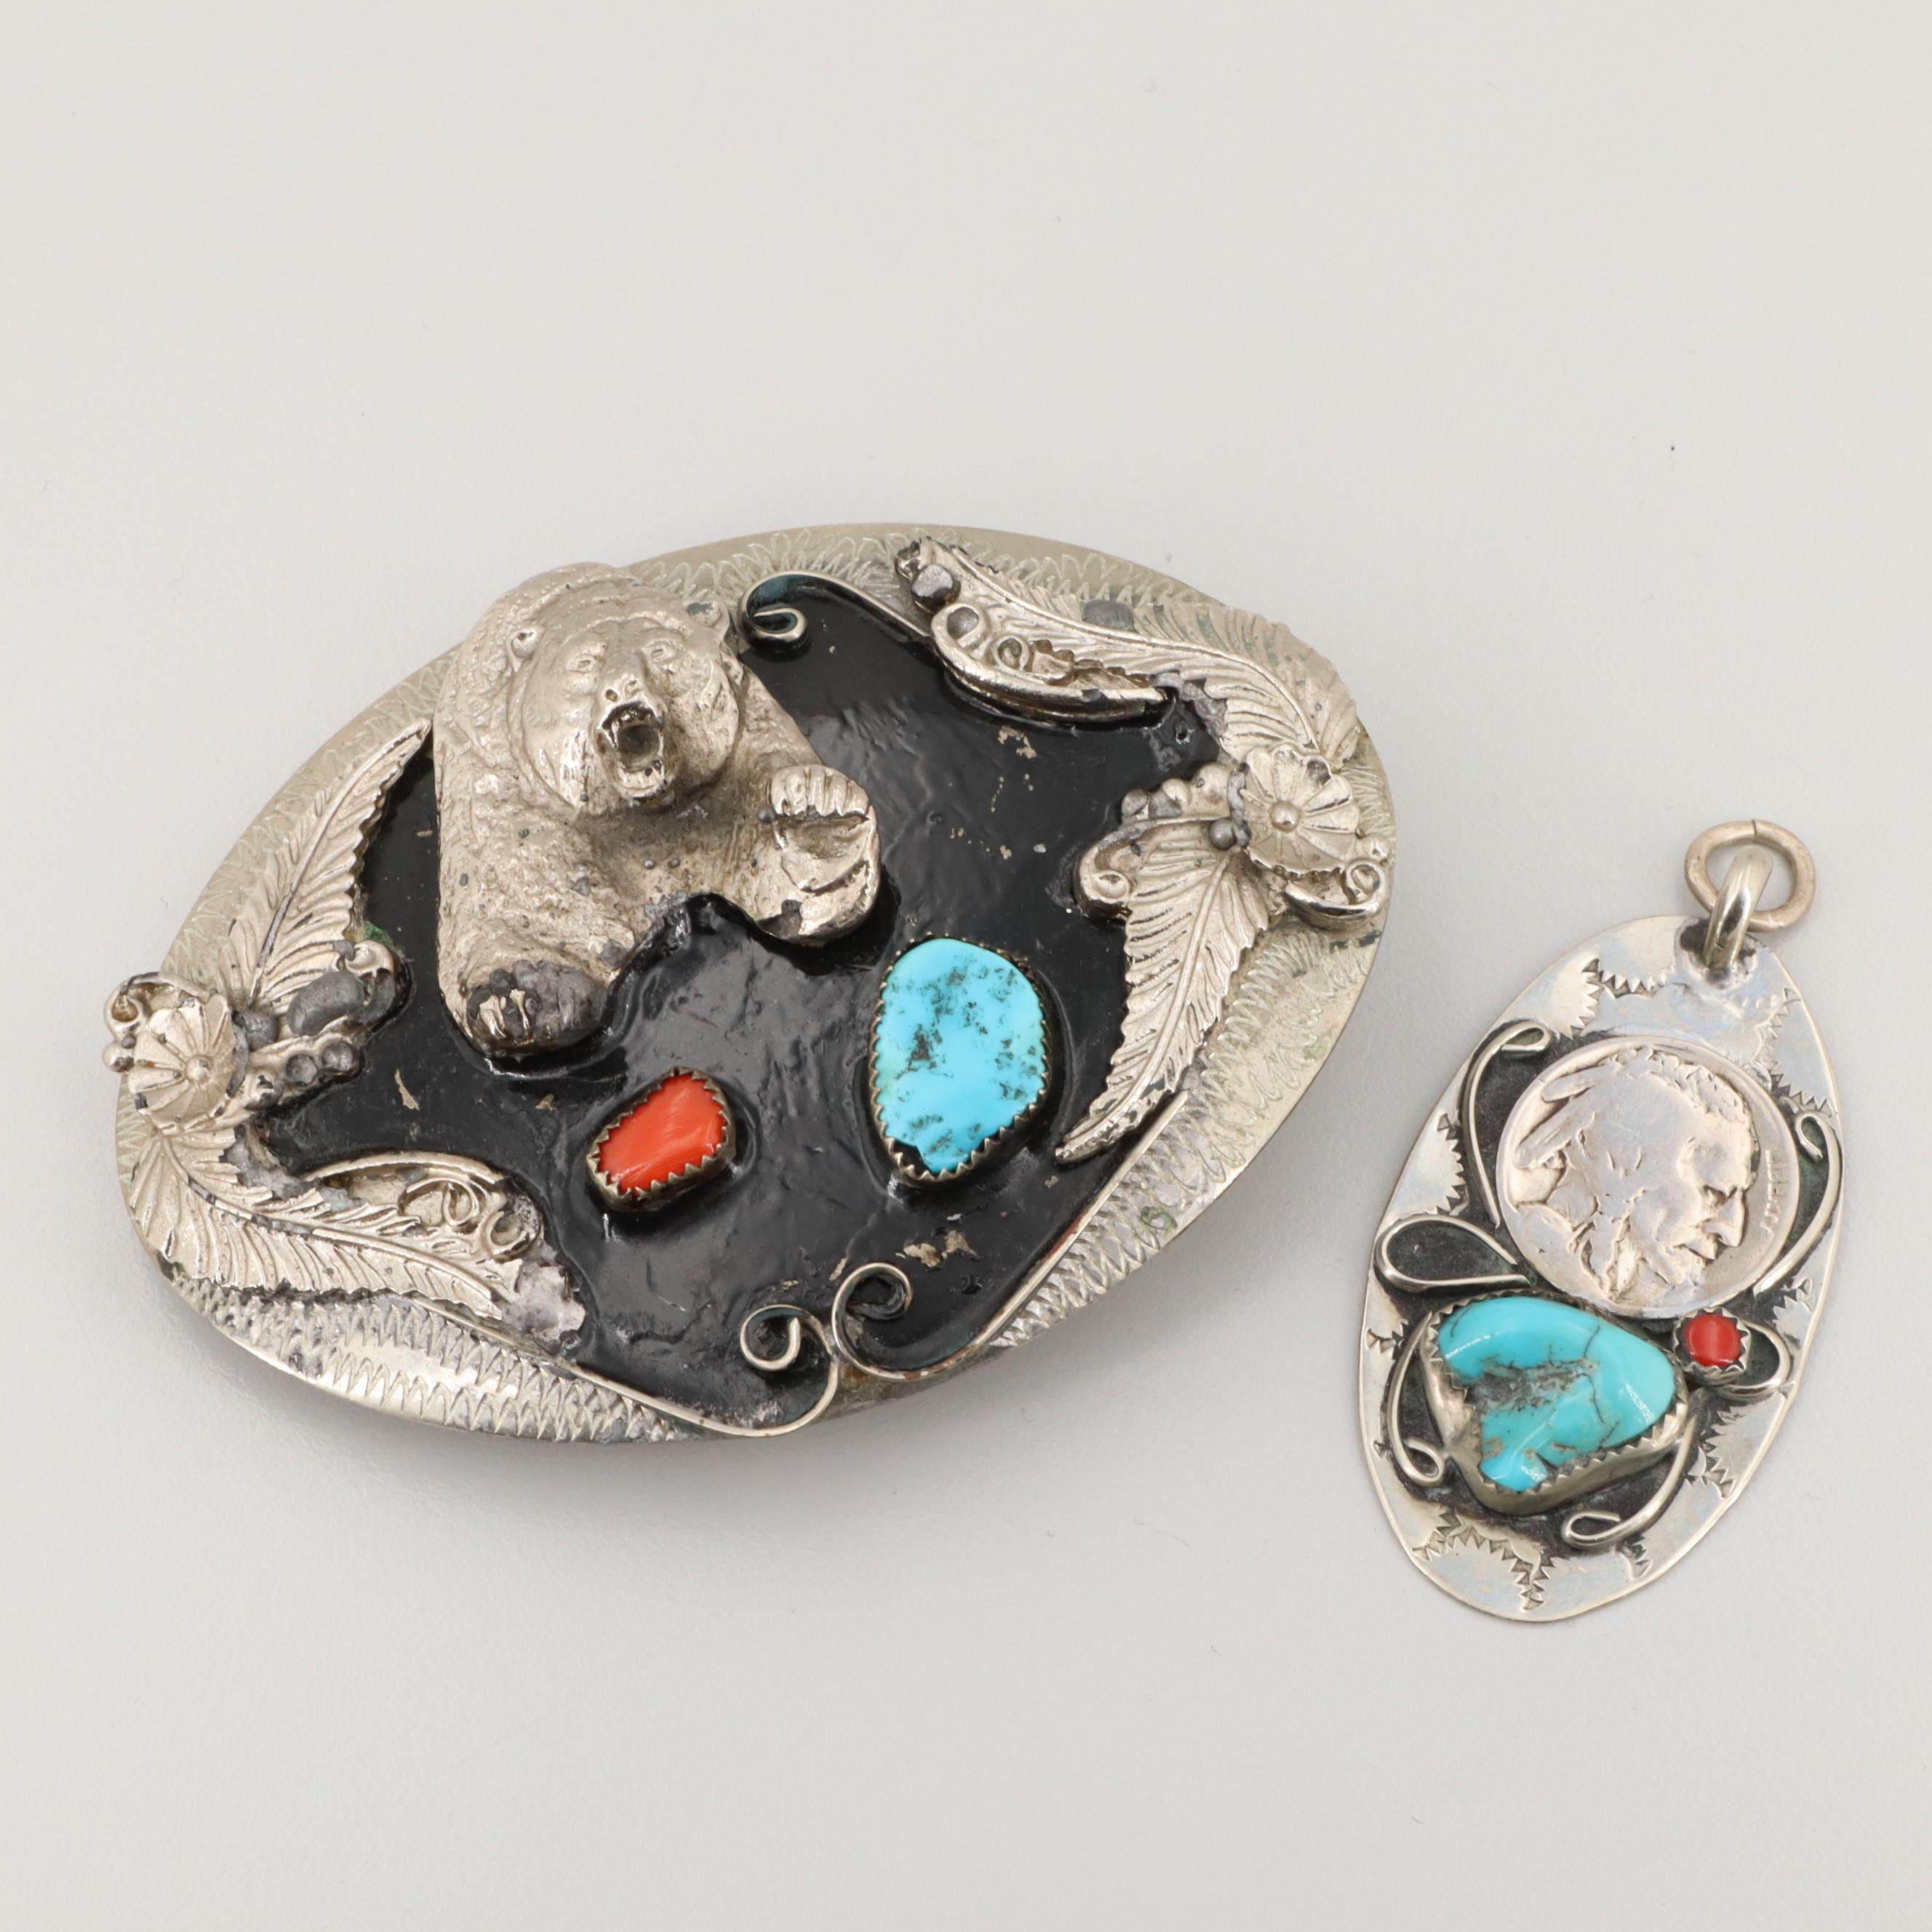 Southwestern Turquoise and Coral Belt Buckle and Pendant with Buffalo Nickel